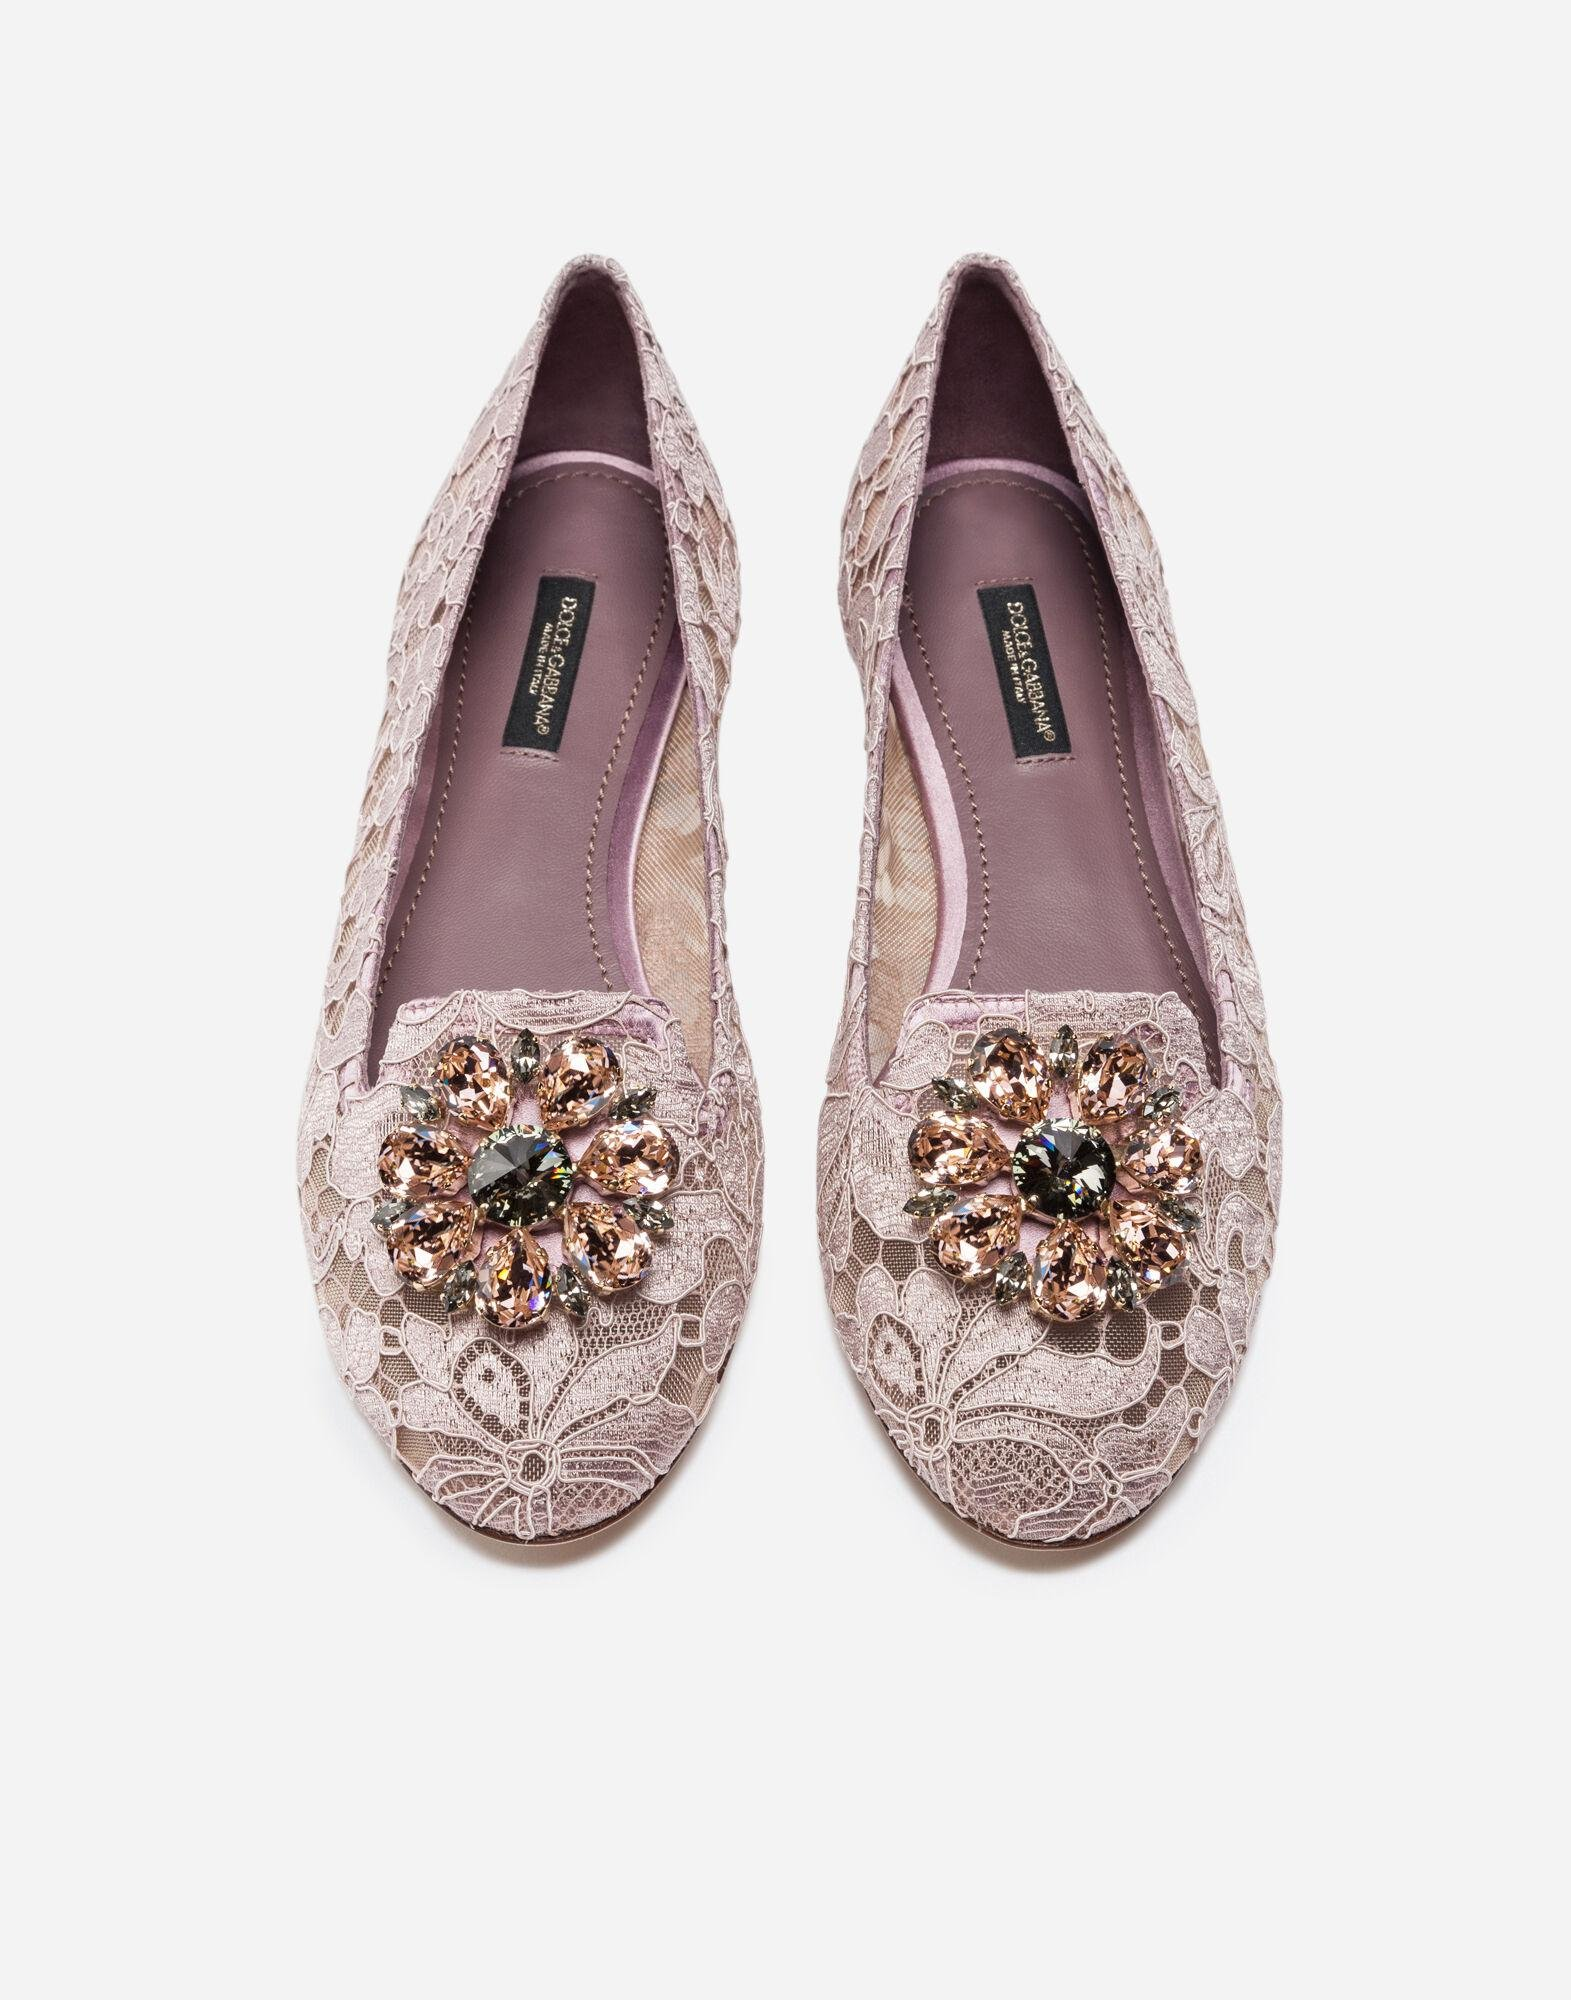 Slipper in Taormina lace with crystals 2